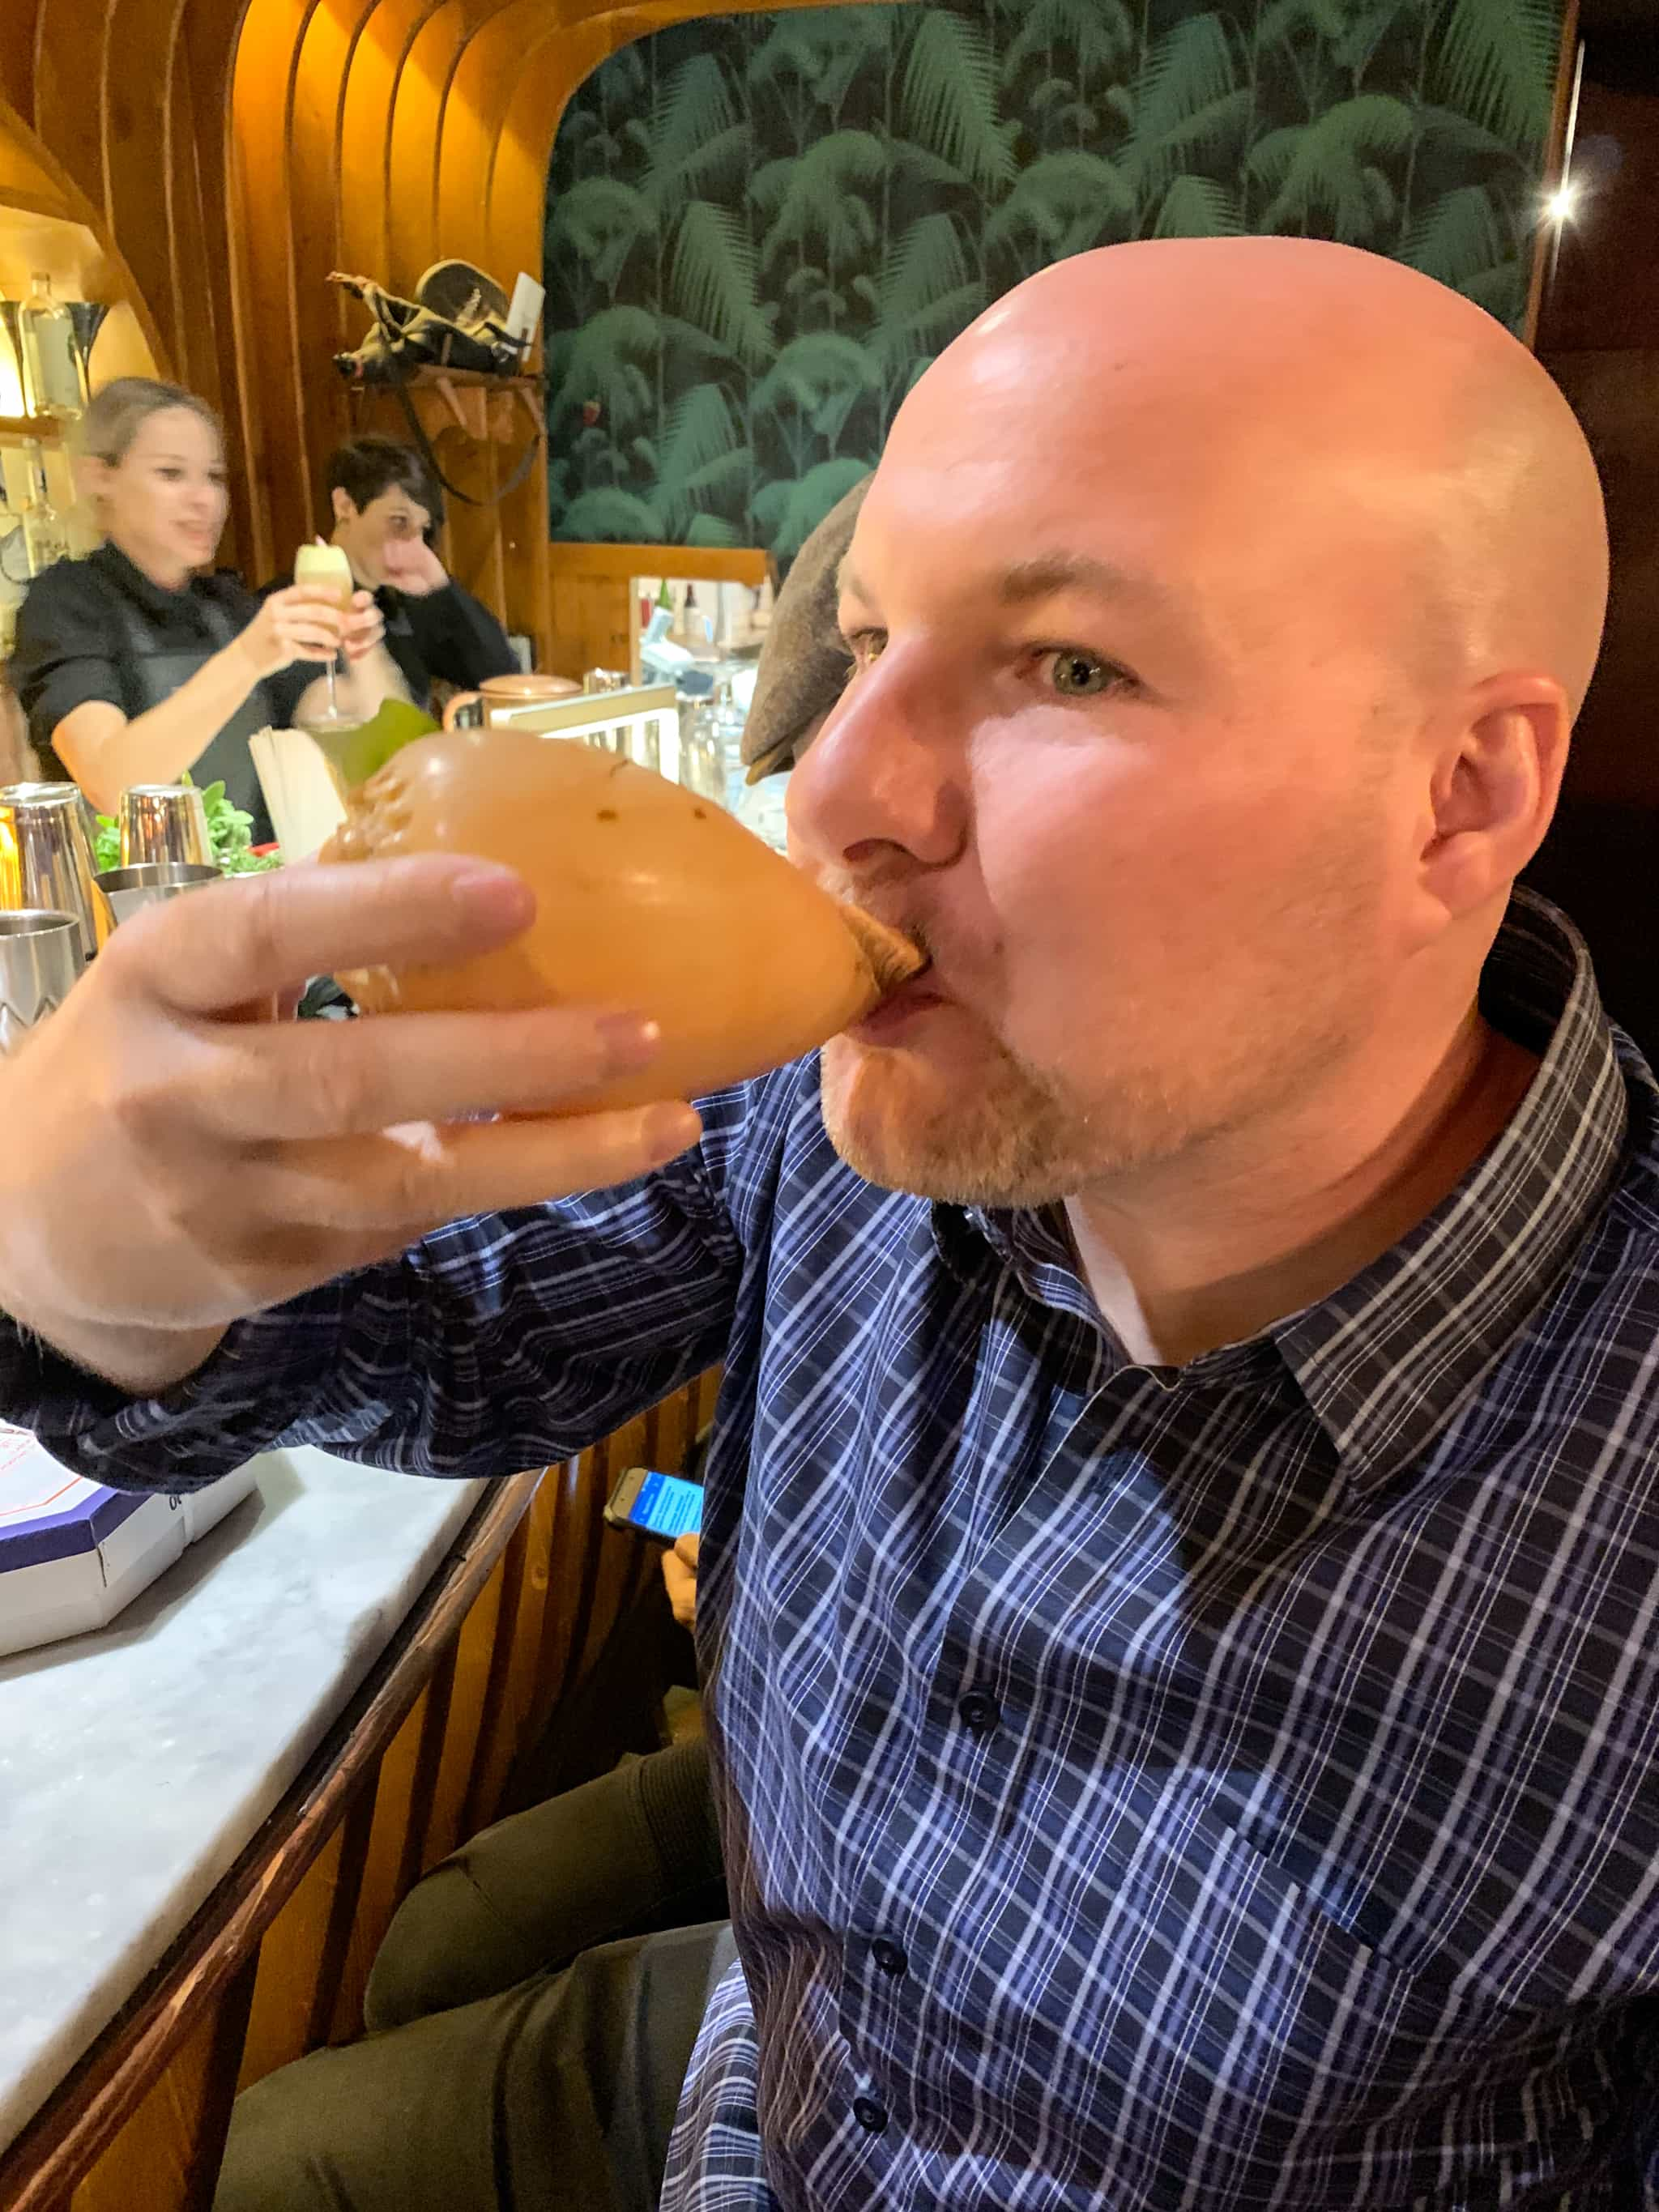 Drinking from a sea shell